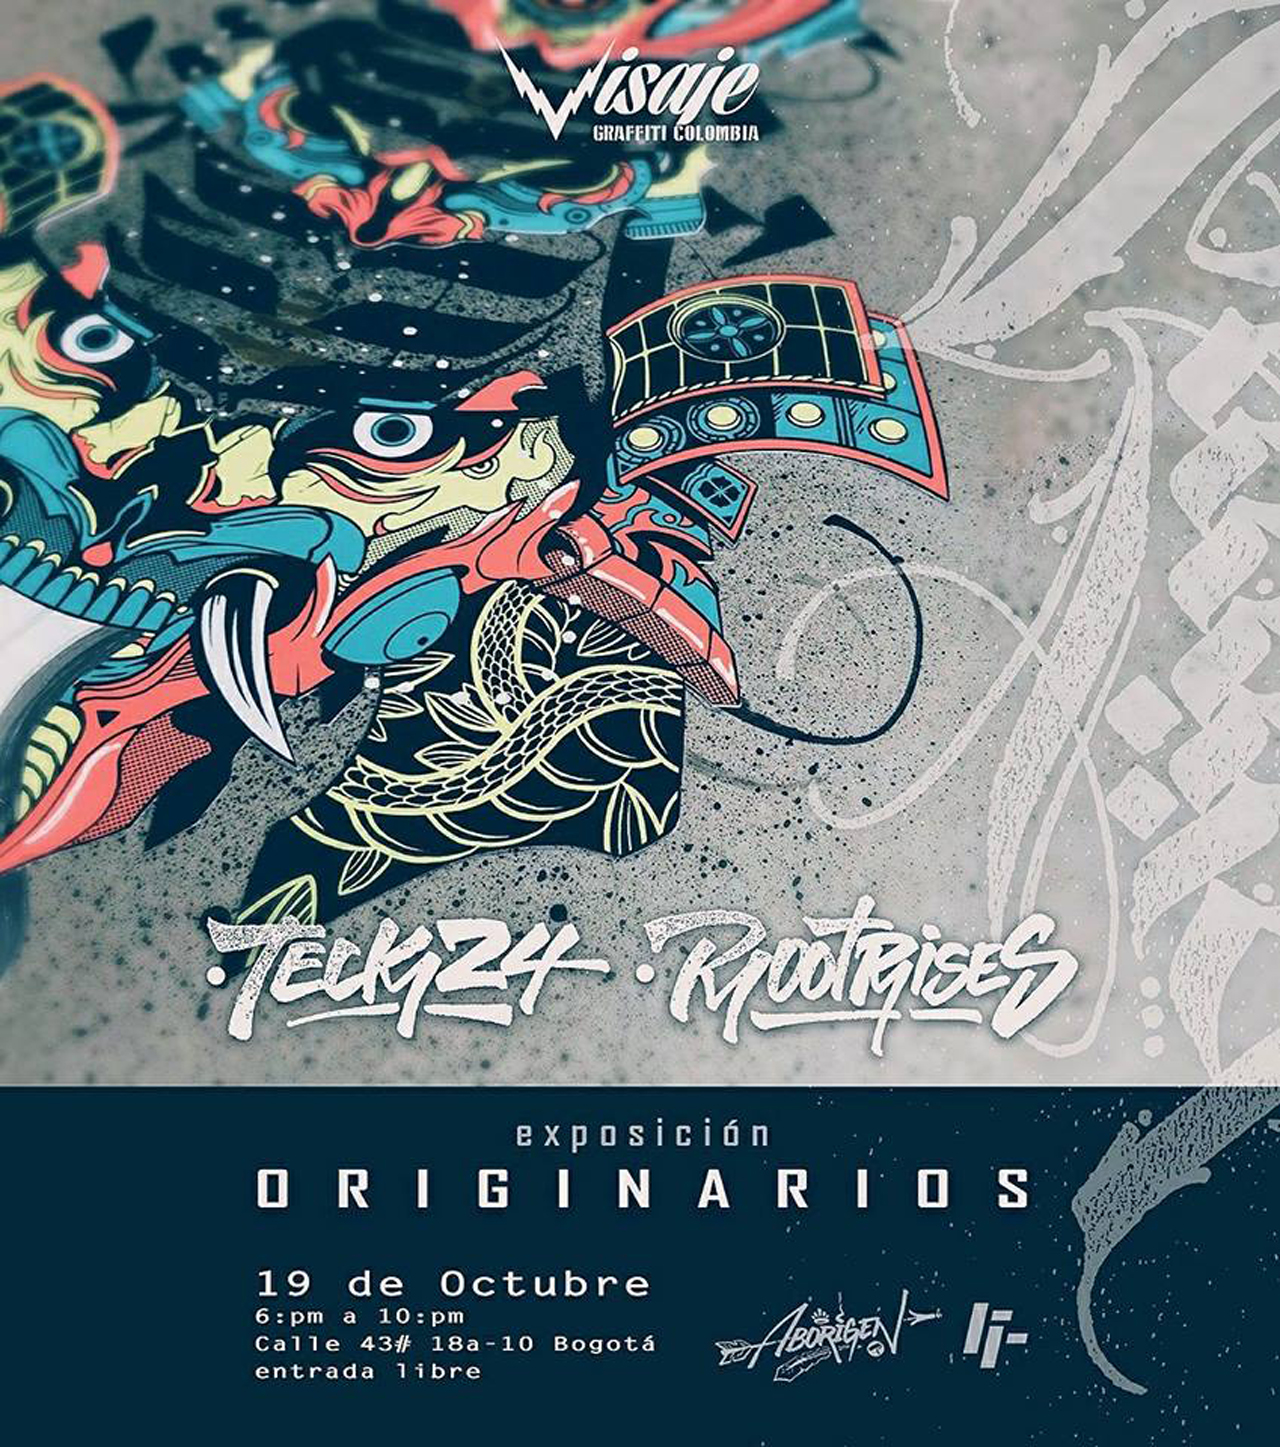 originarios-flyer.jpg